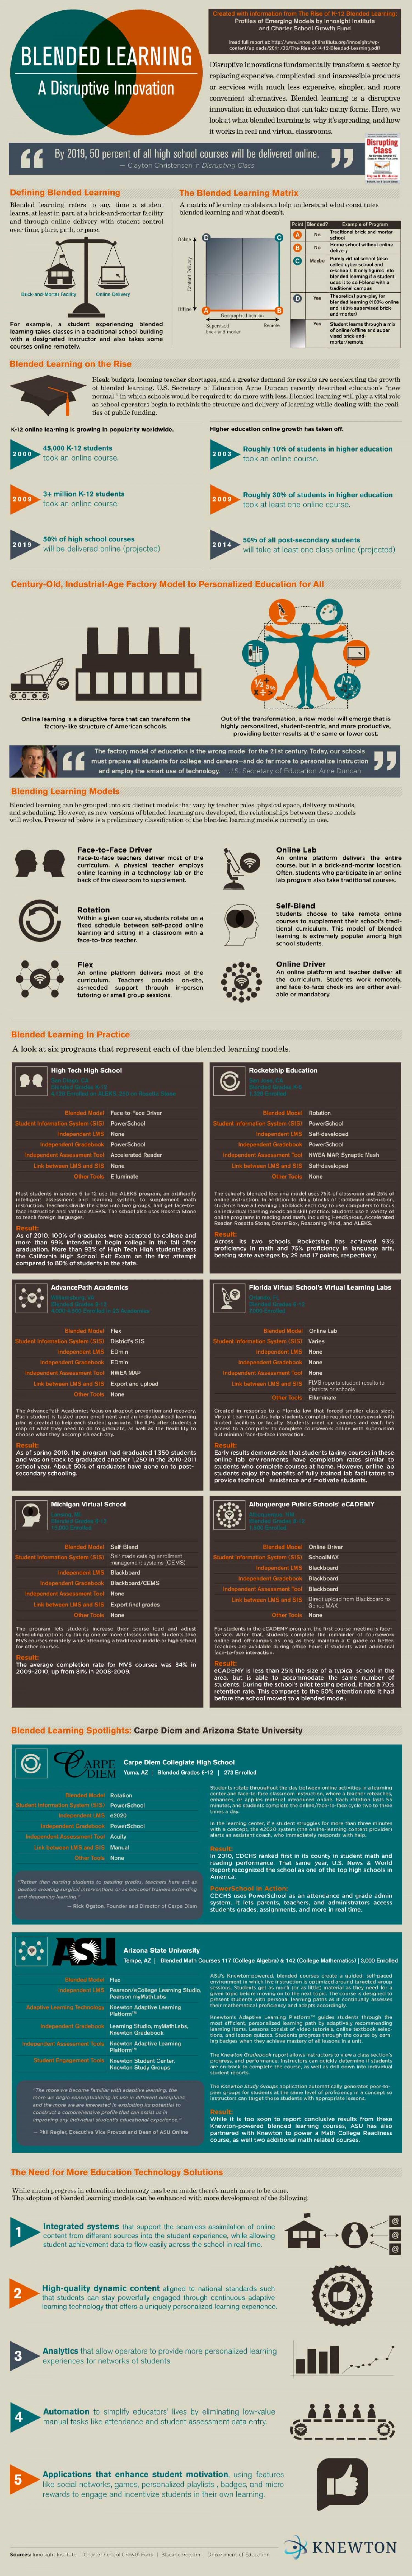 Blended Learning: A Disruptive Innovation Infographic